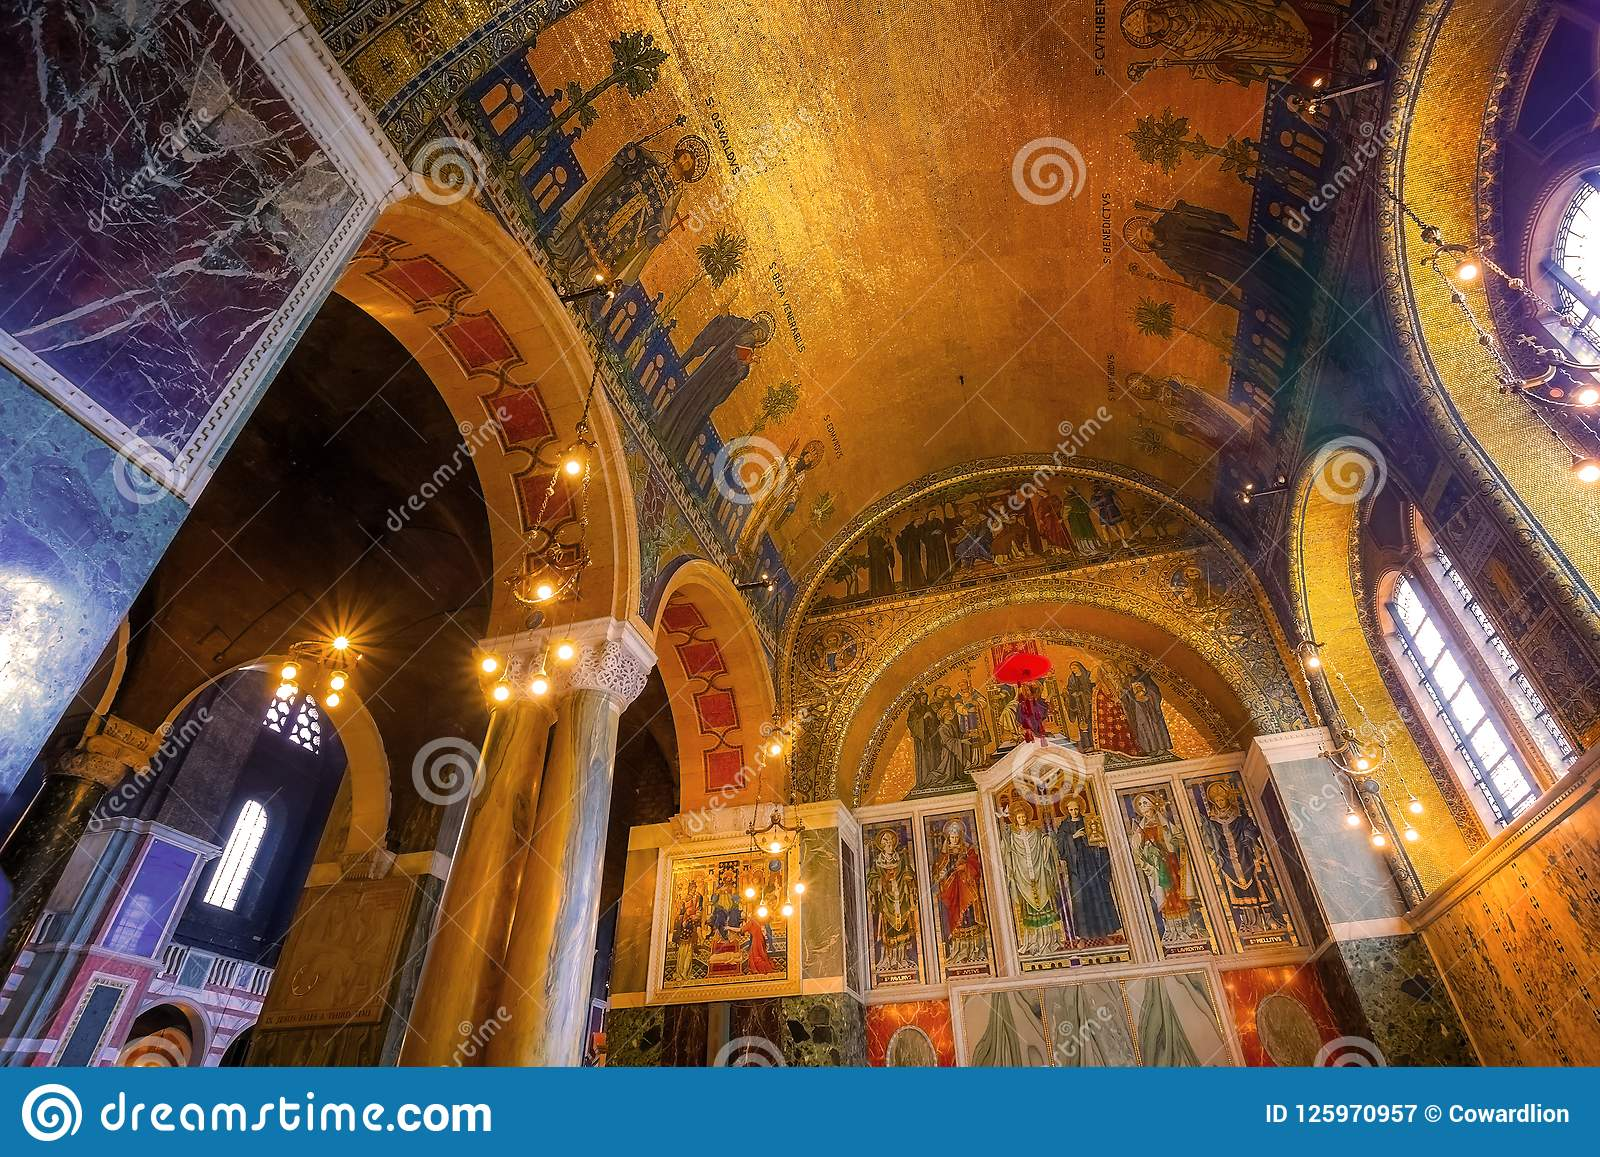 b5dfefee5 ... or the Metropolitan Cathedral of the Precious Blood of Our Lord Jesus  Christ designed by John Francis Bentley and opened in 1903 in neo-Byzantine  style